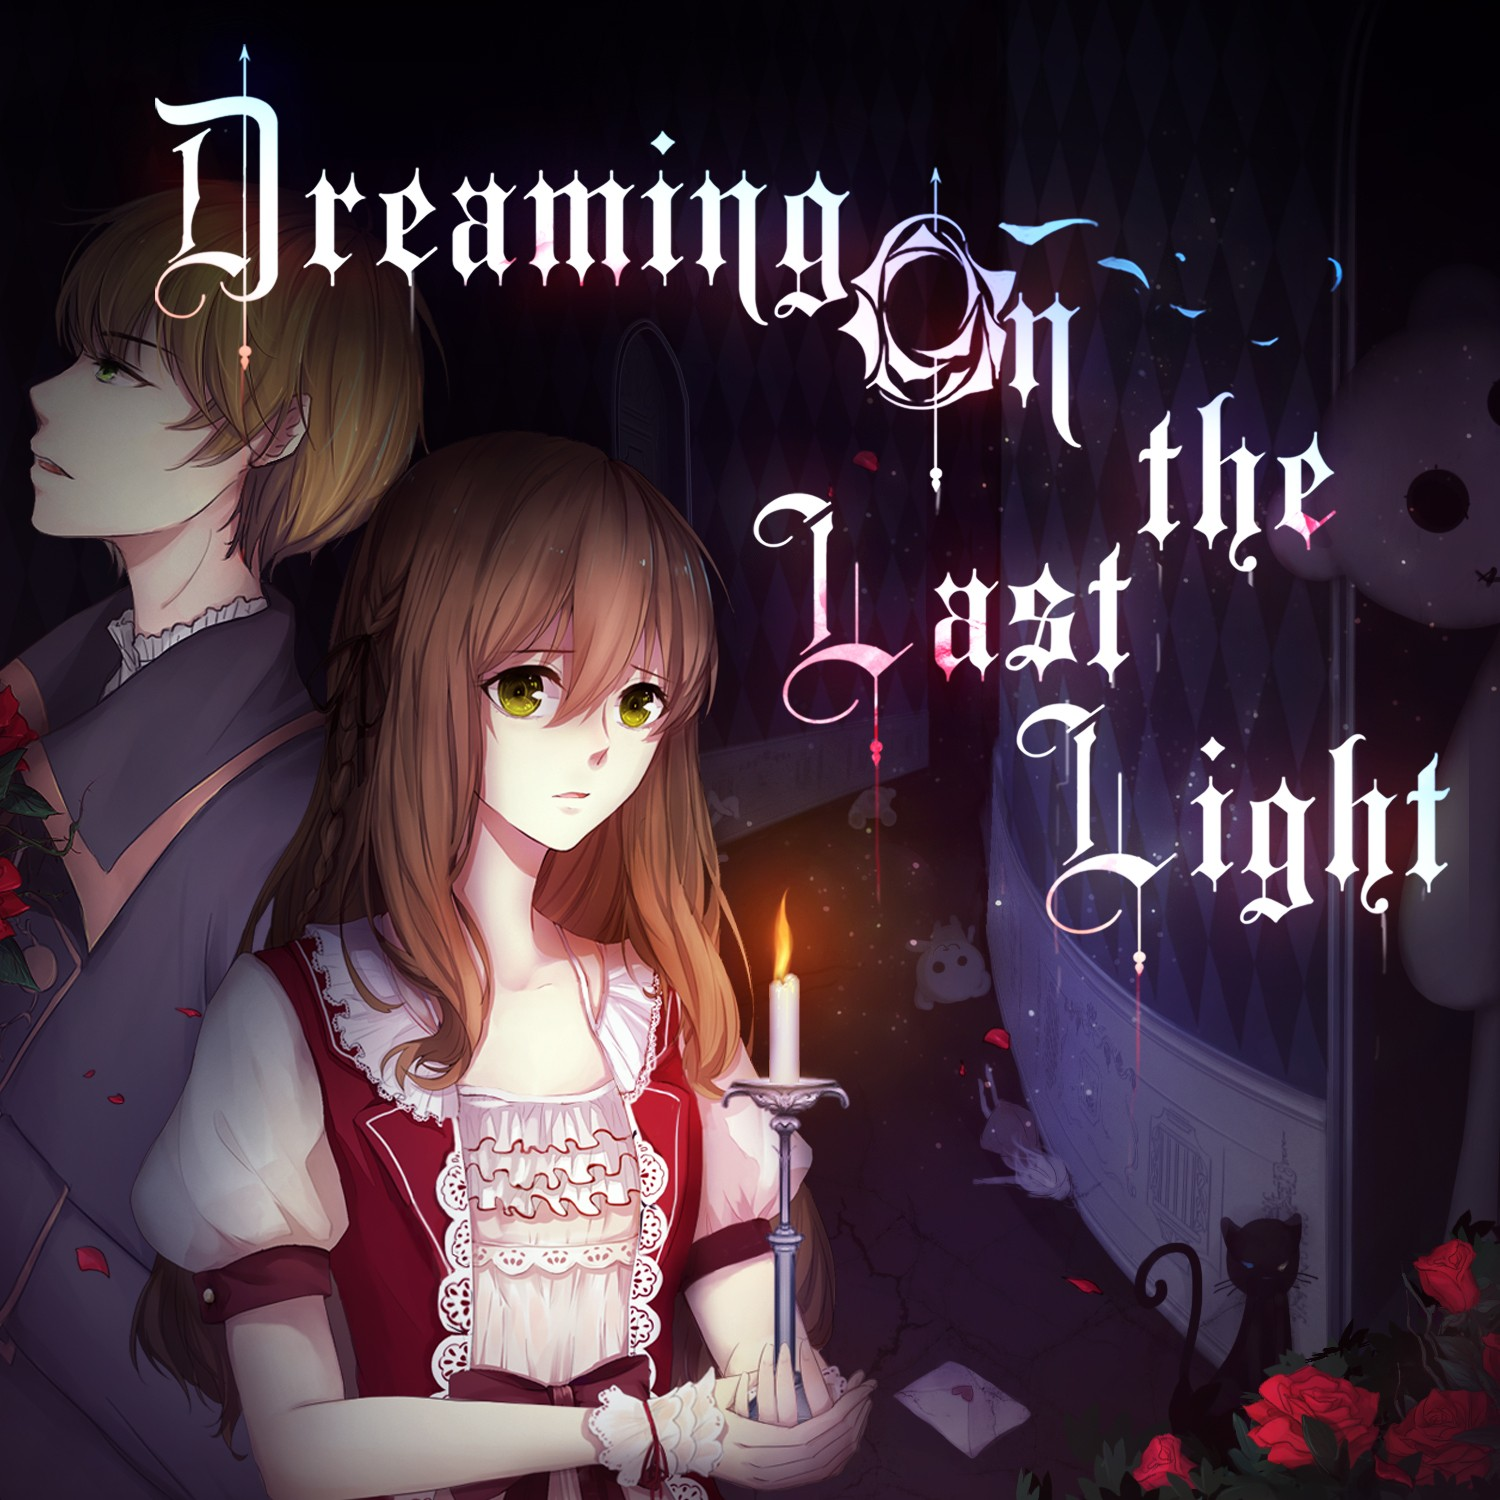 Dreaming On the Last Light 人偶馆绮幻夜